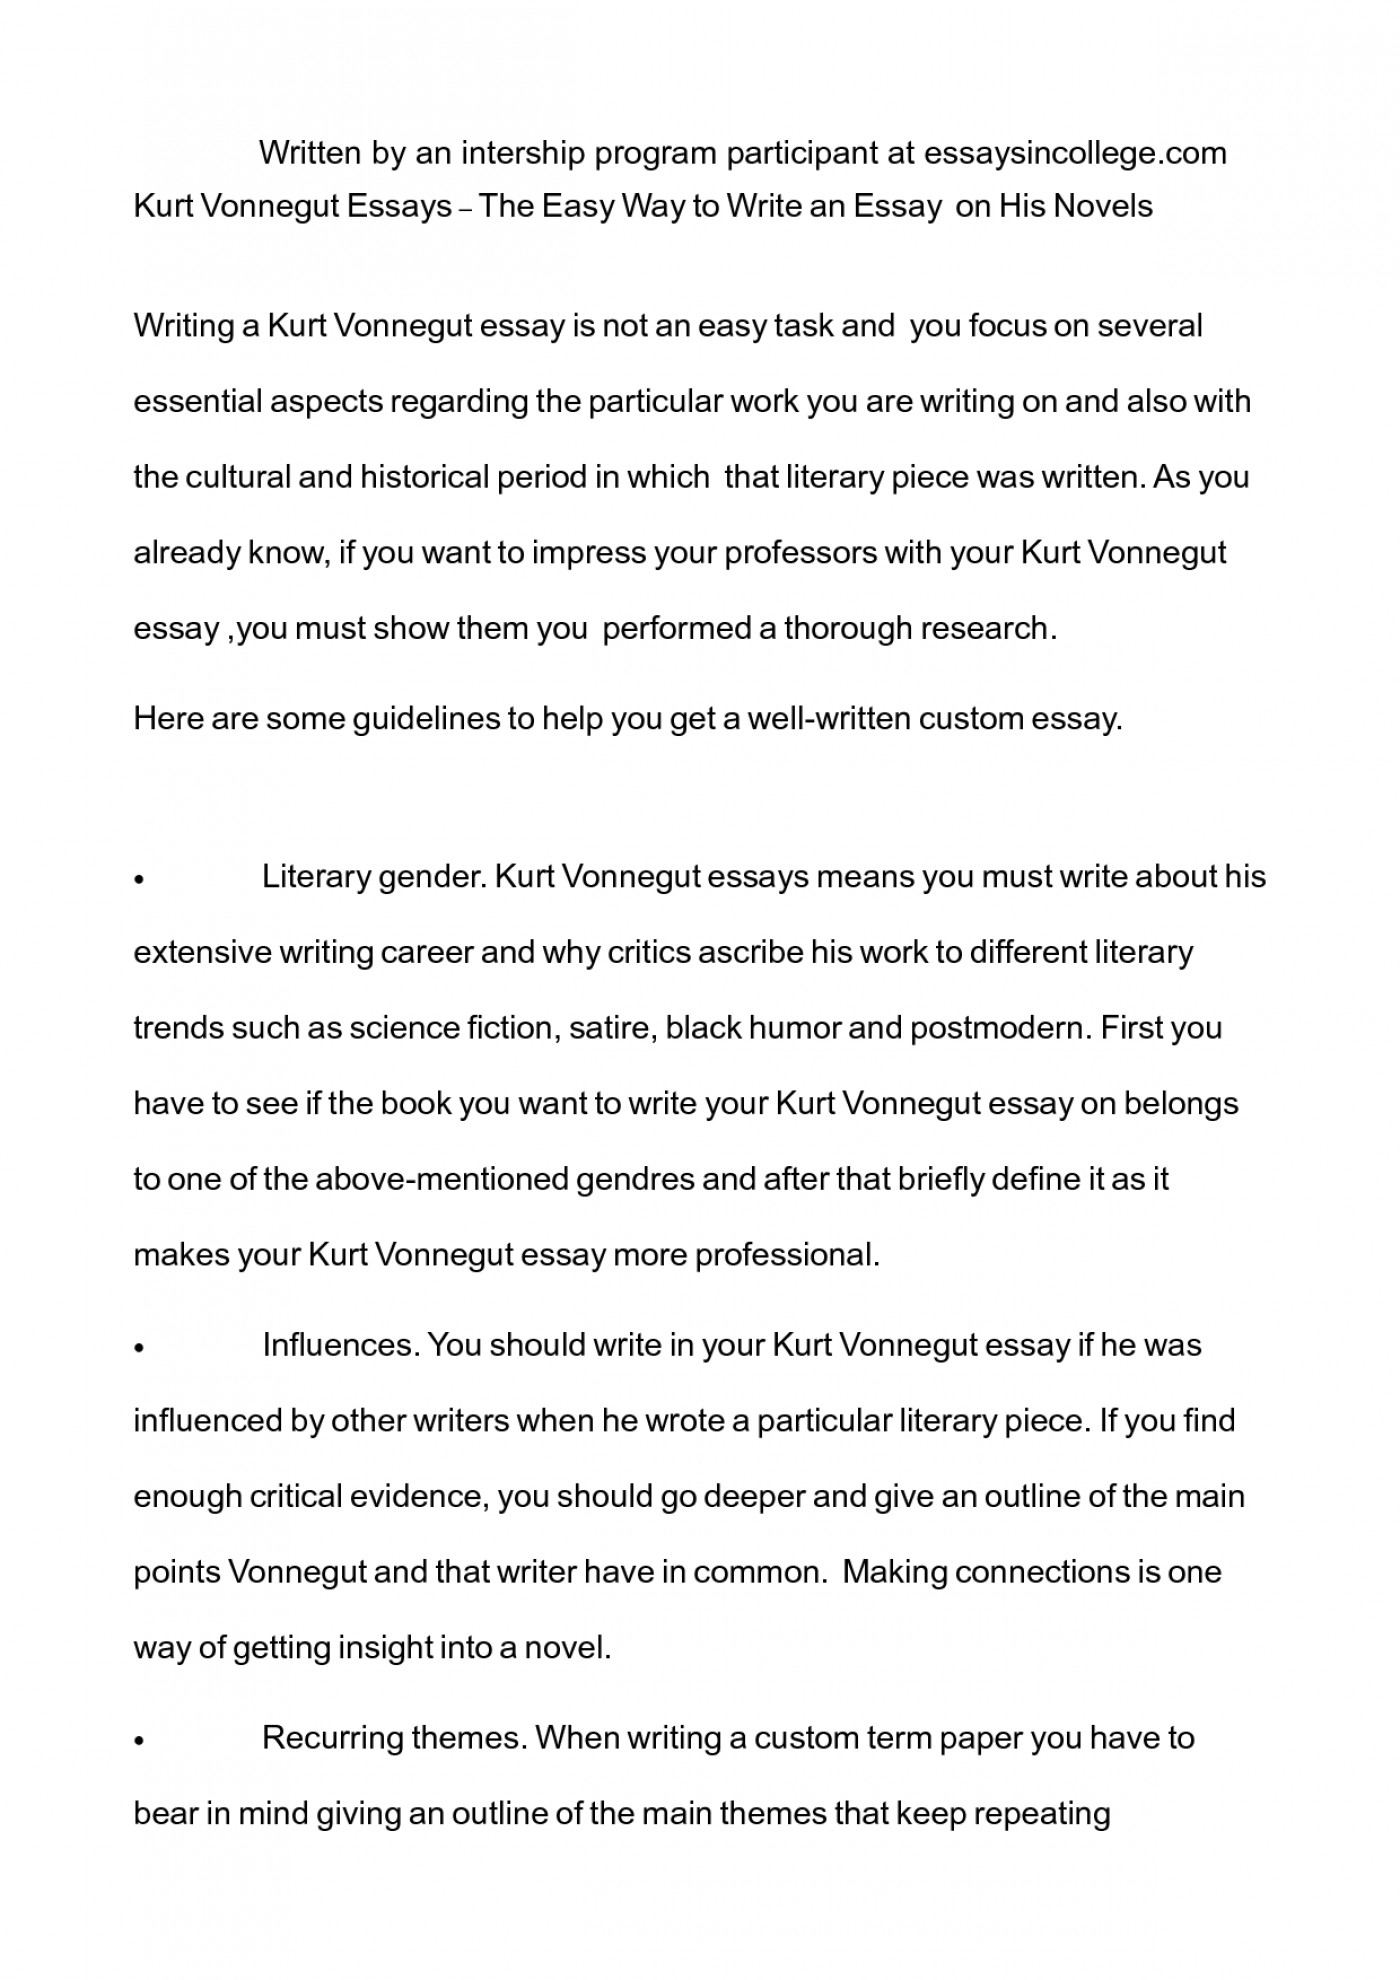 001 Easy Essay Writing Ujolpknqnj Marvelous Examples Ielts Tips Task 2 Topics 1400